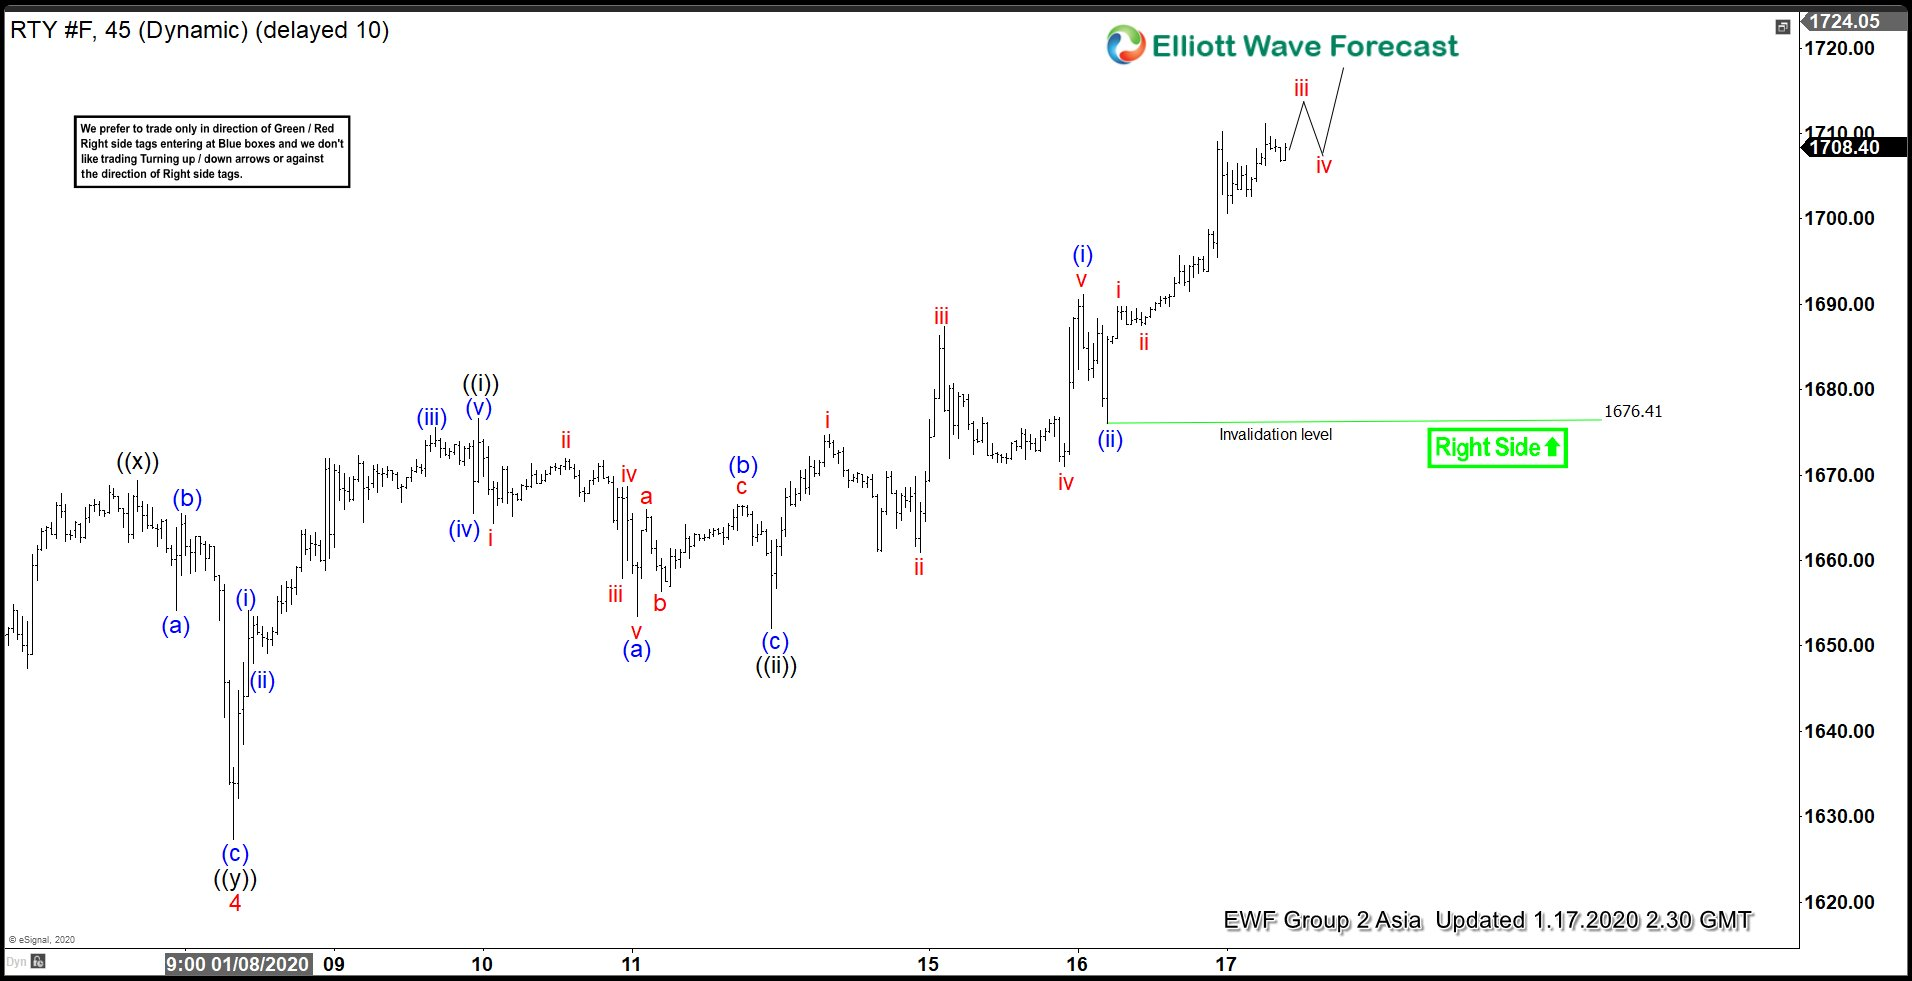 Elliott Wave View: Russell Impulsive Rally In Progress